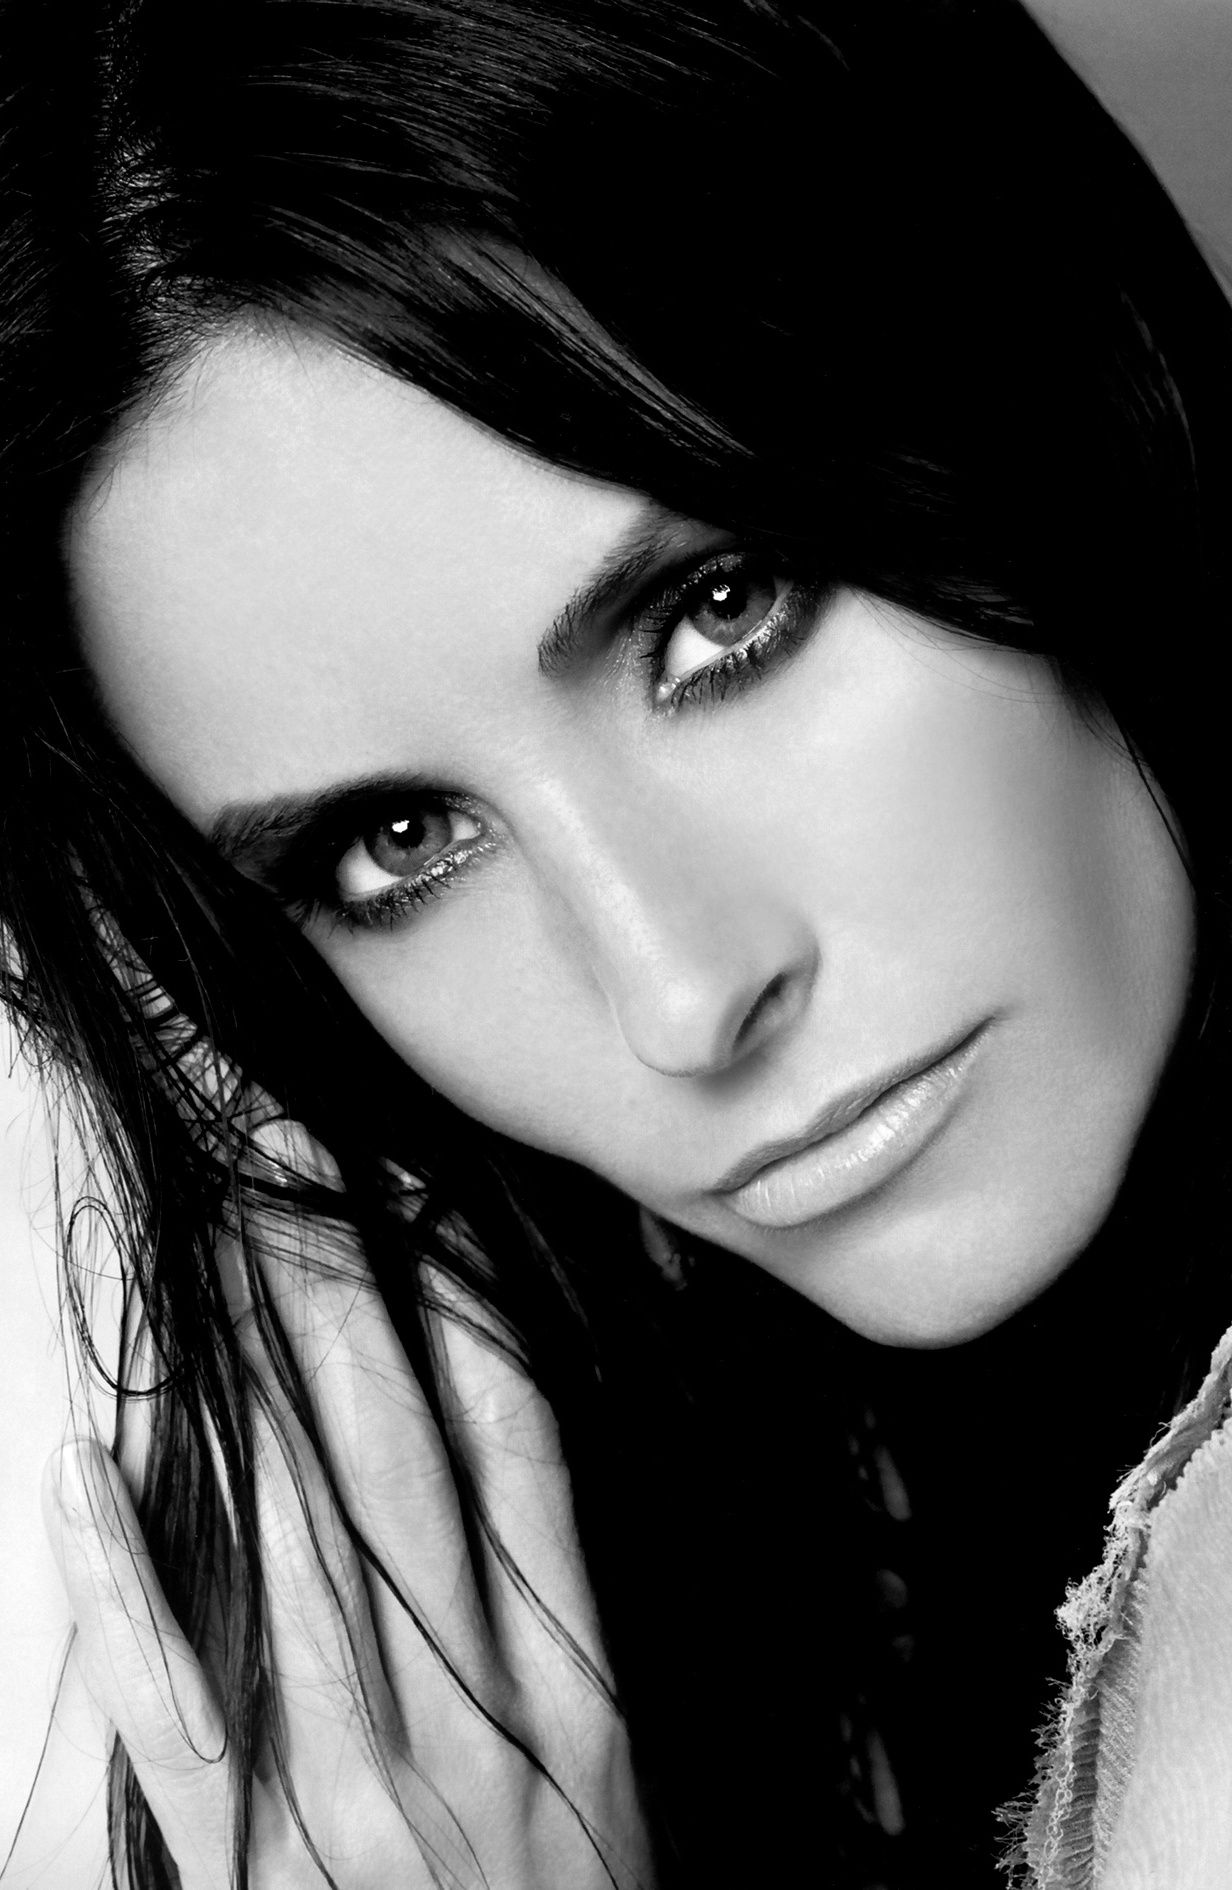 Courtney cox woman face portraits portrait ideas all black black and